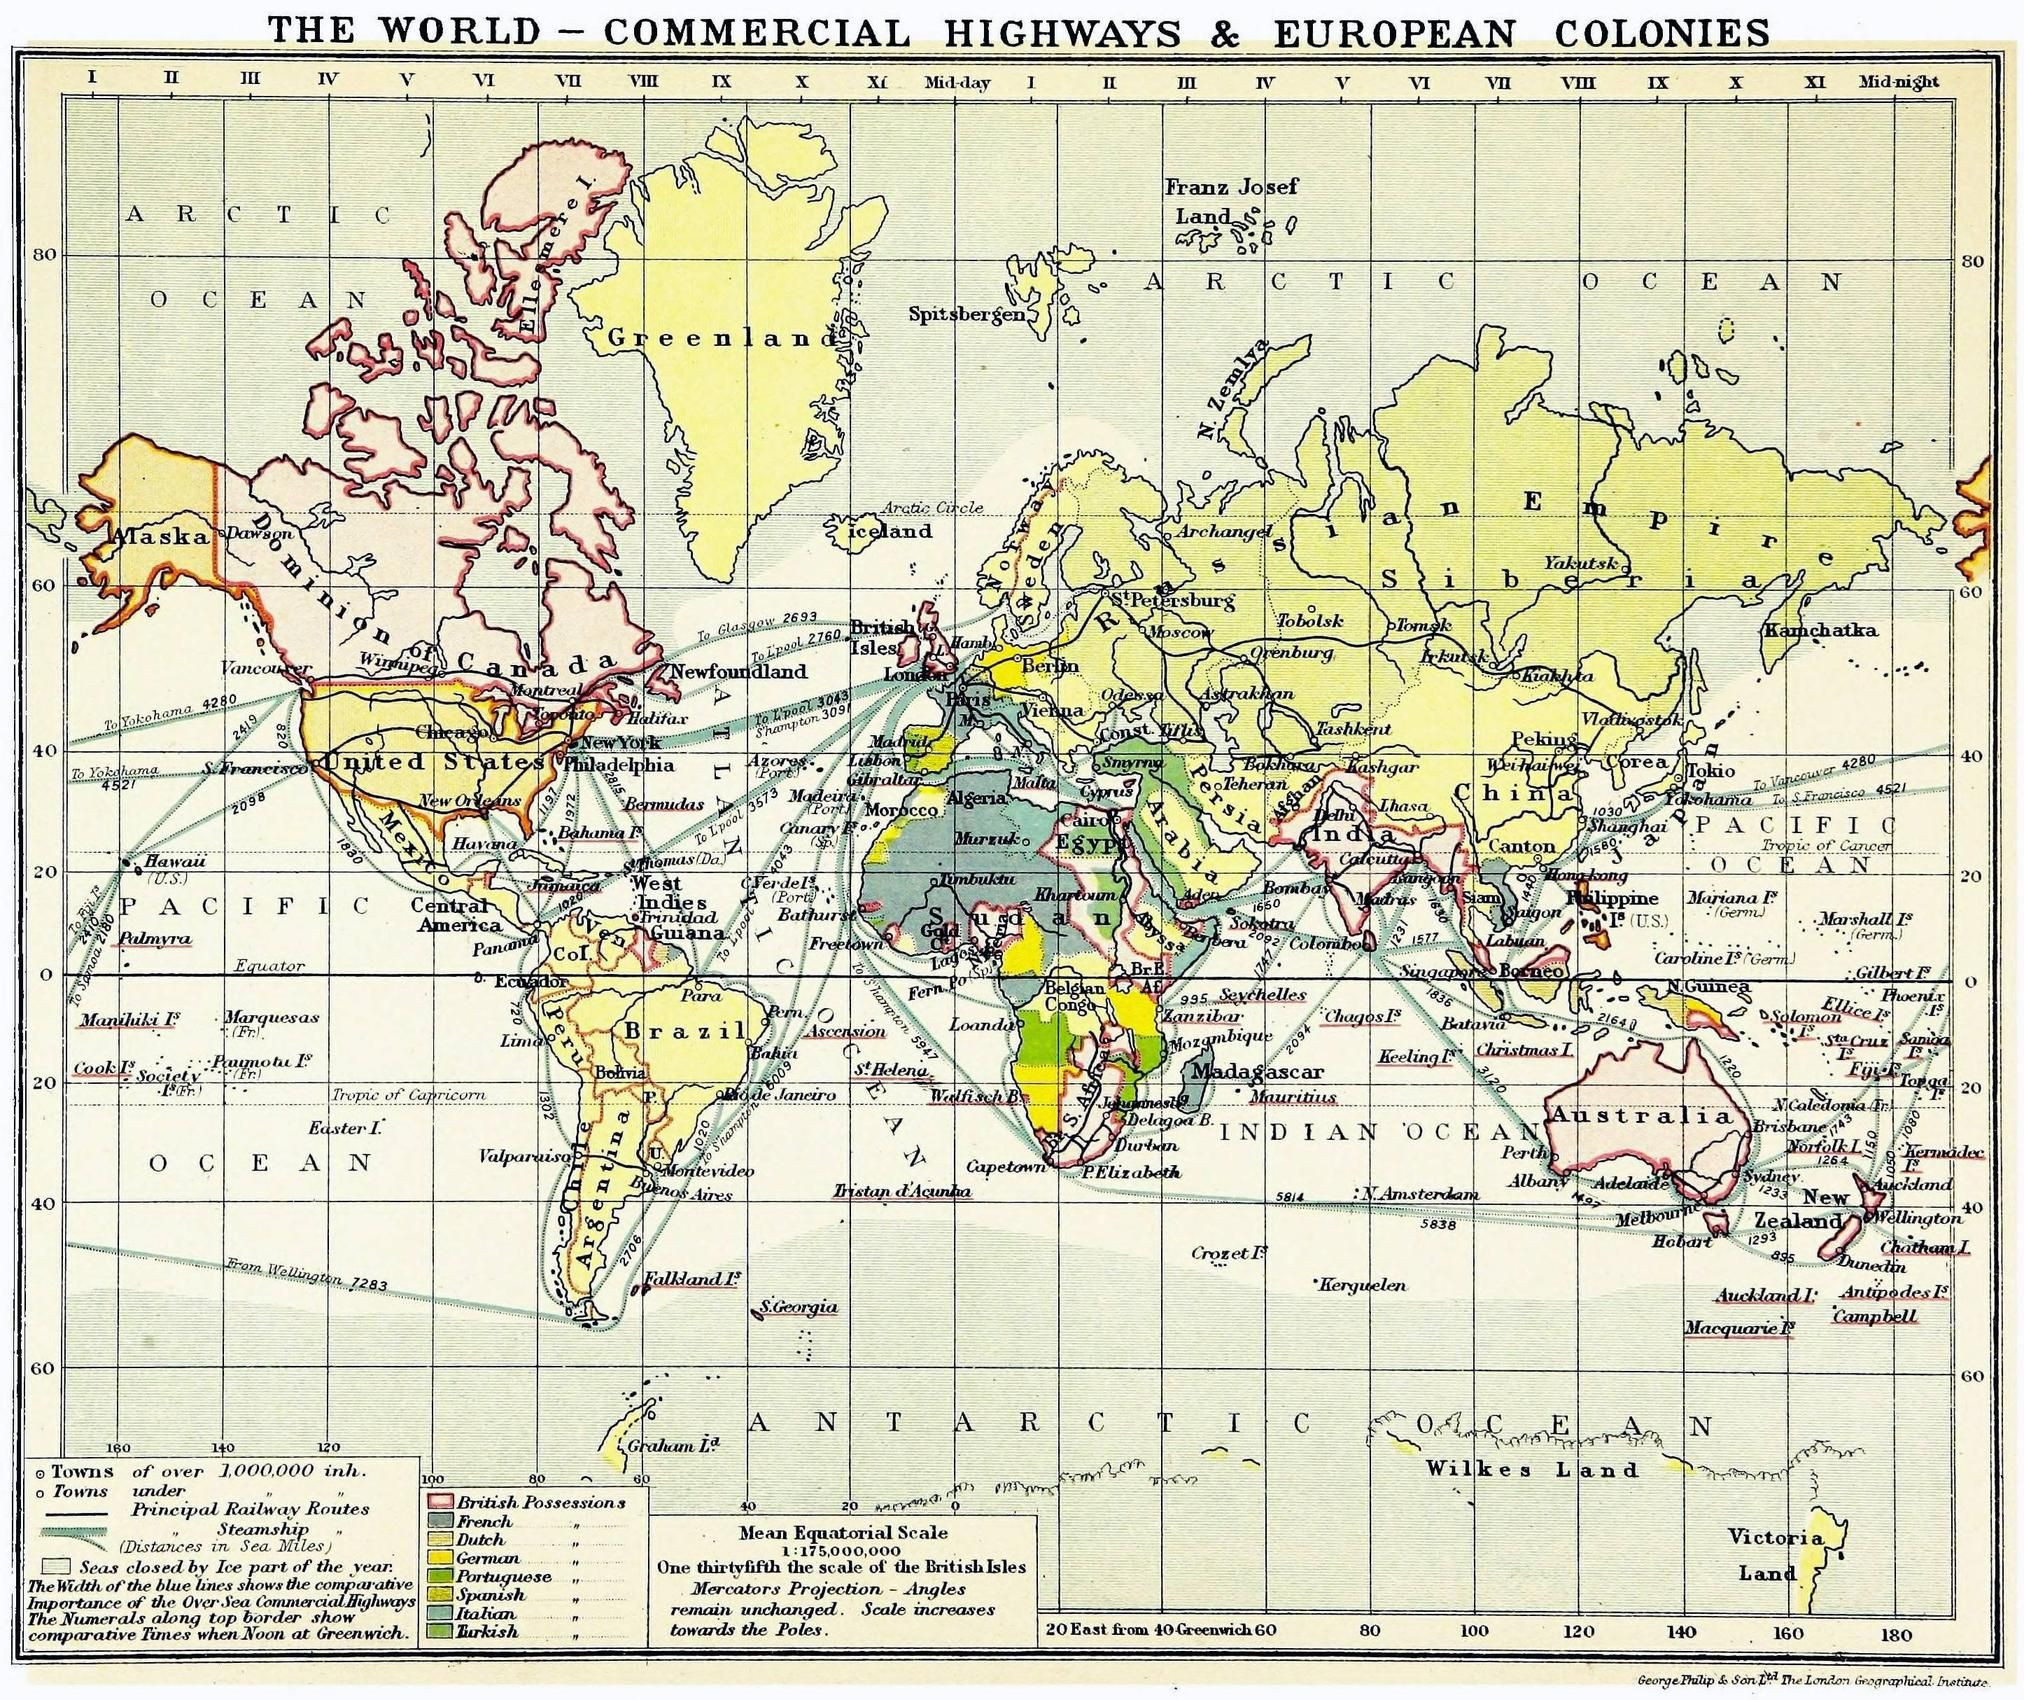 The World s mercial Highways & European Colonies 1913 map